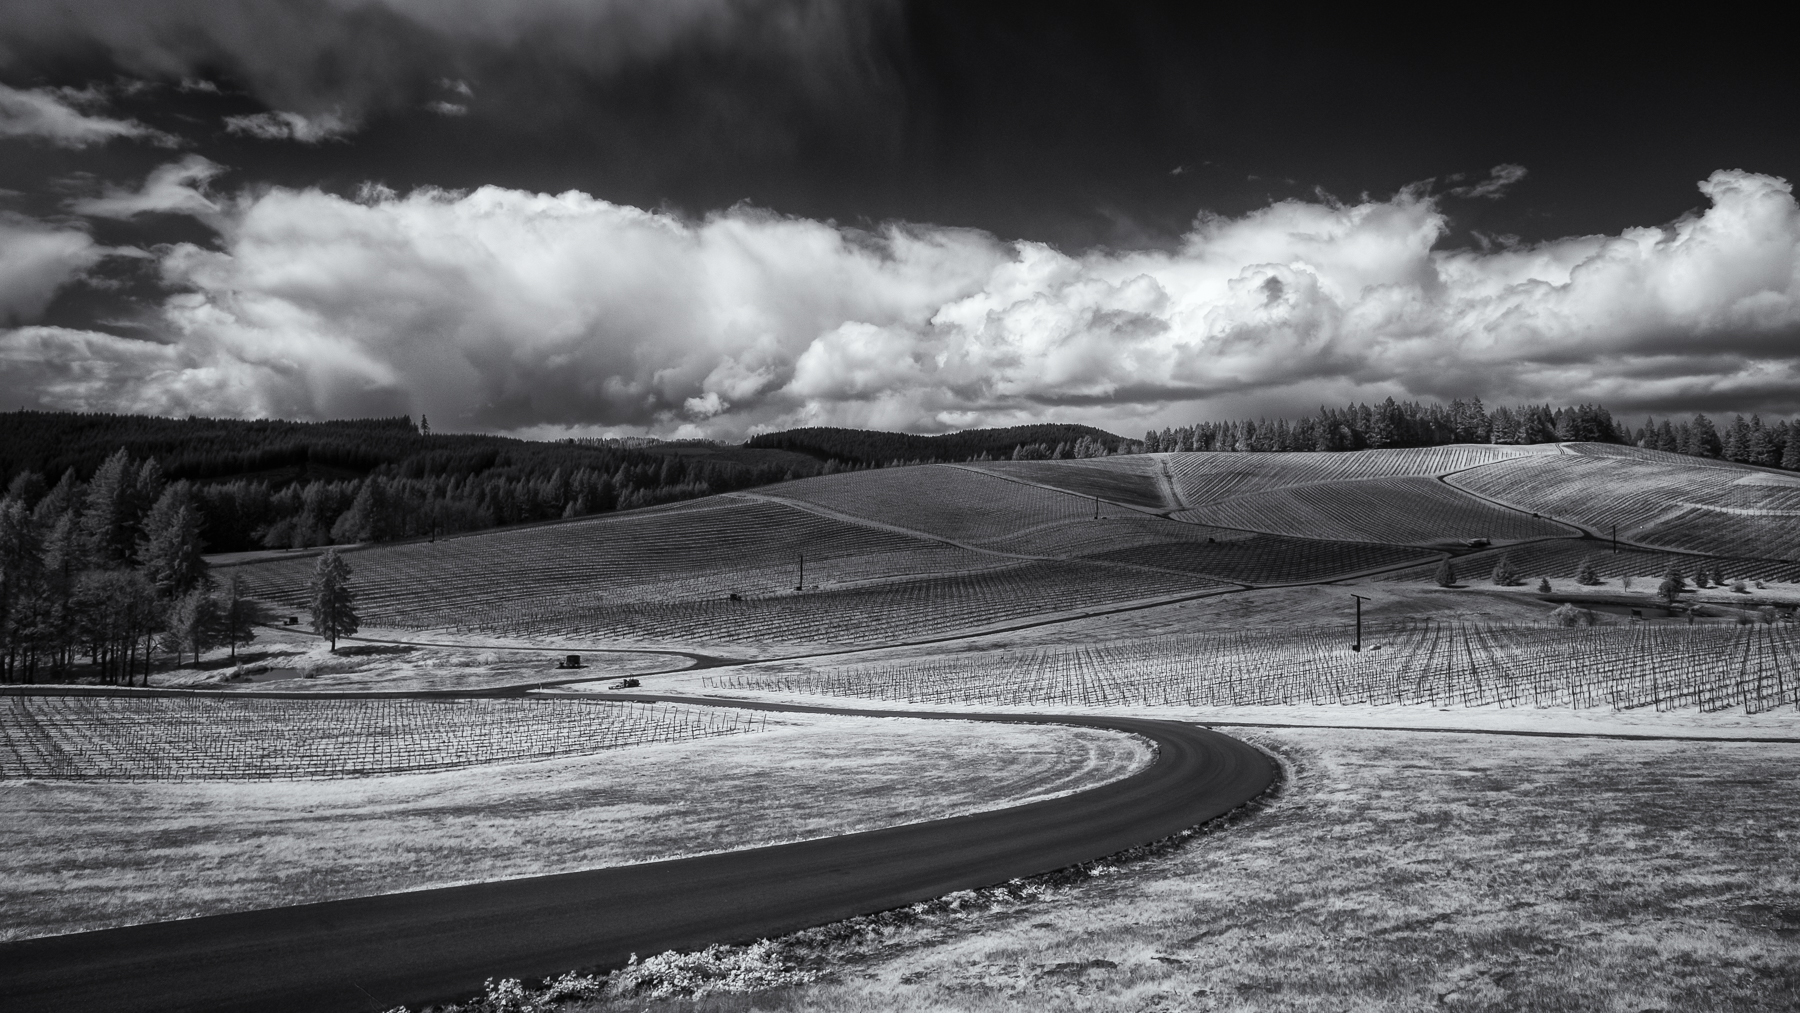 Clouds over the Domaine vineyard